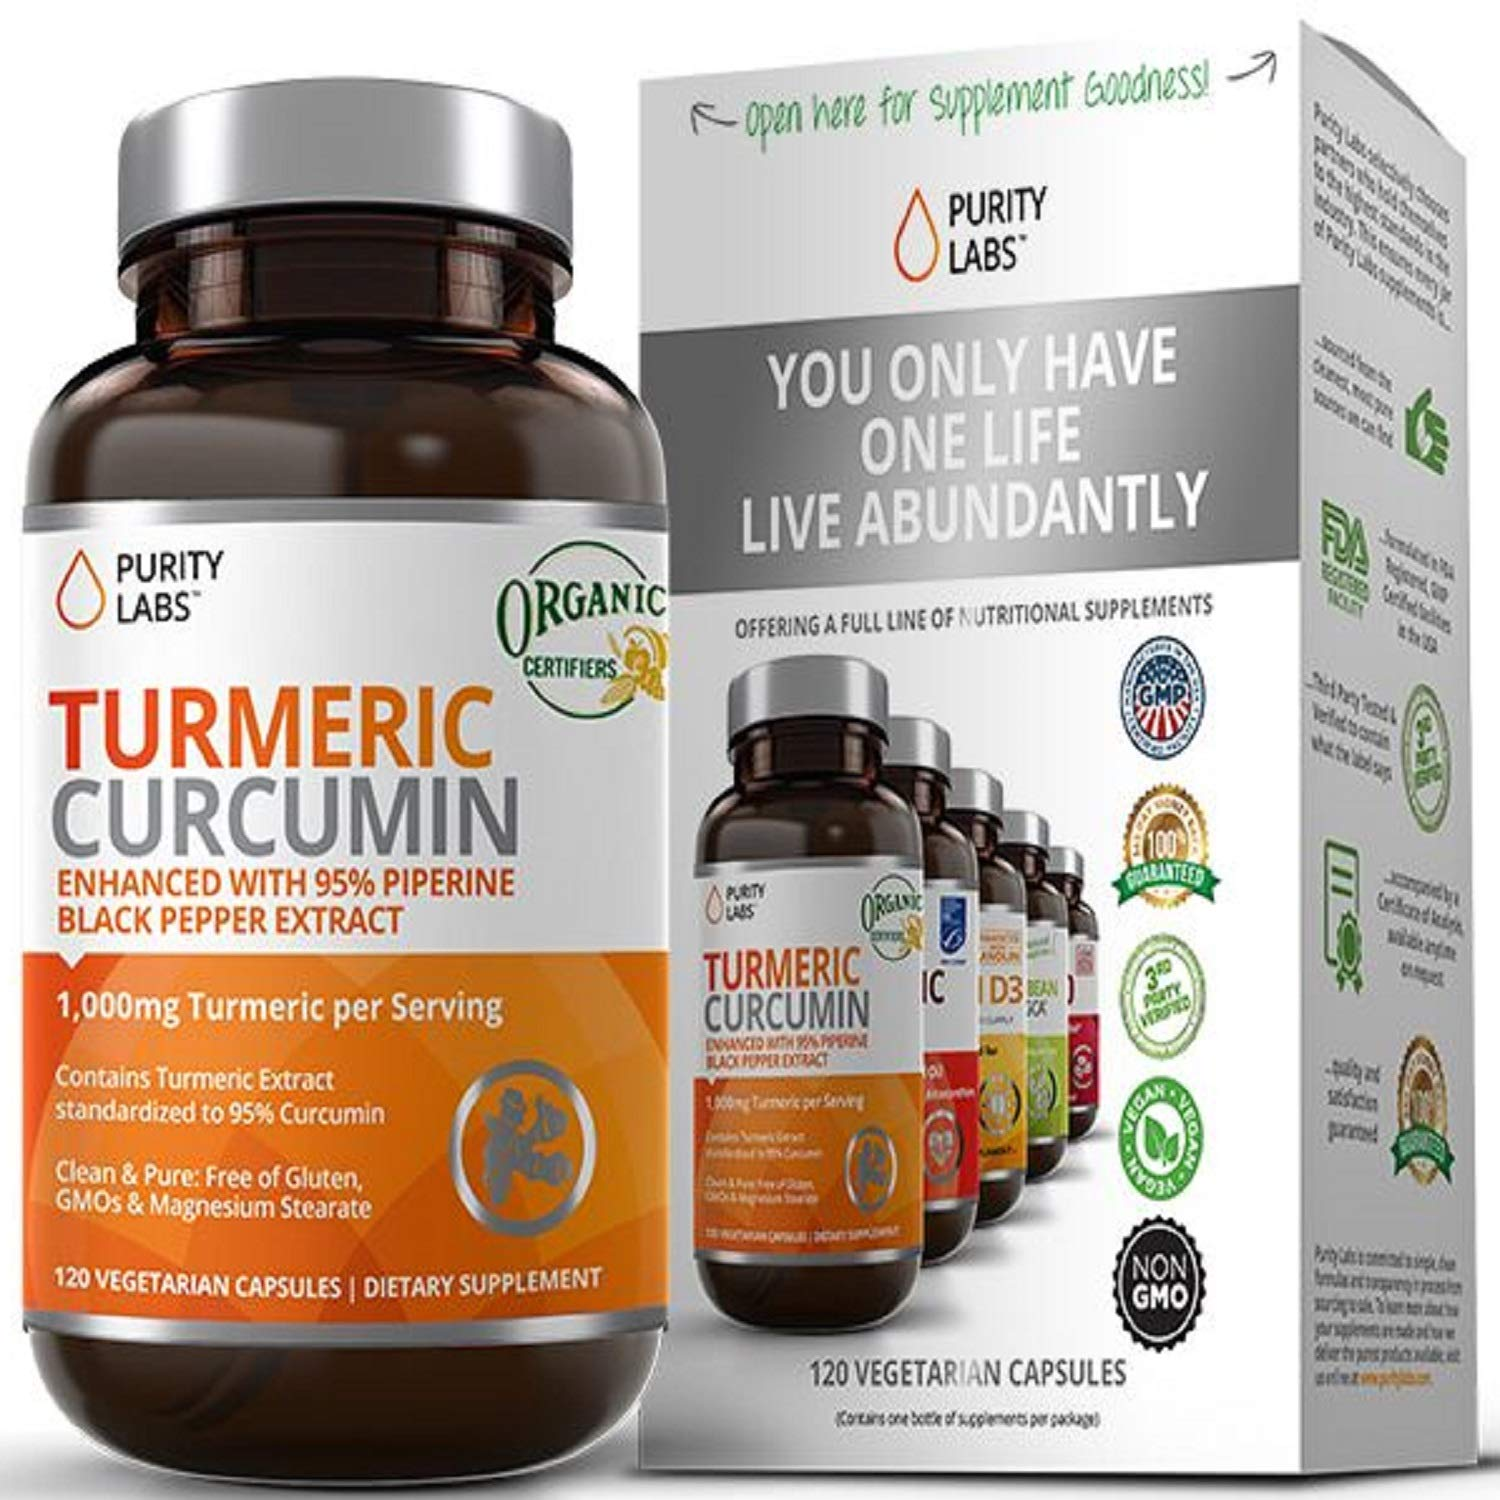 Purity Labs Organic Turmeric Curcumin Supplement - 1100mg, 120 Capsules, with Black Pepper Piperine and 95% Curcuminoids, Highest Potency and Best Joint Pain Relief Formula, Non-GMO & Gluten Free